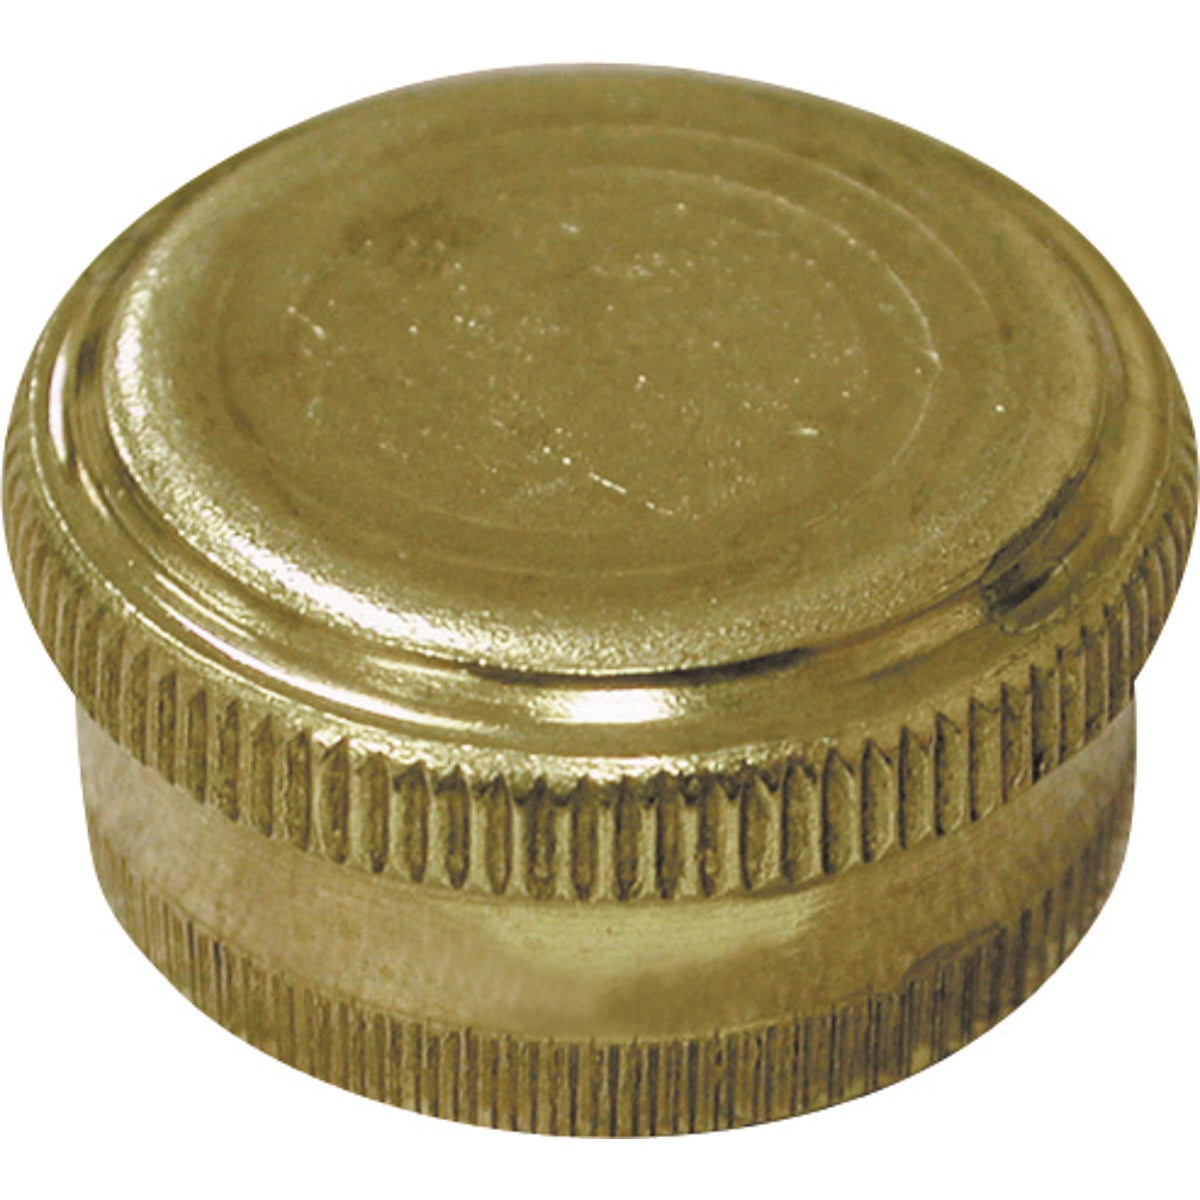 BRASS HOSE CAP - G20-155 by Jones Stephens Corp